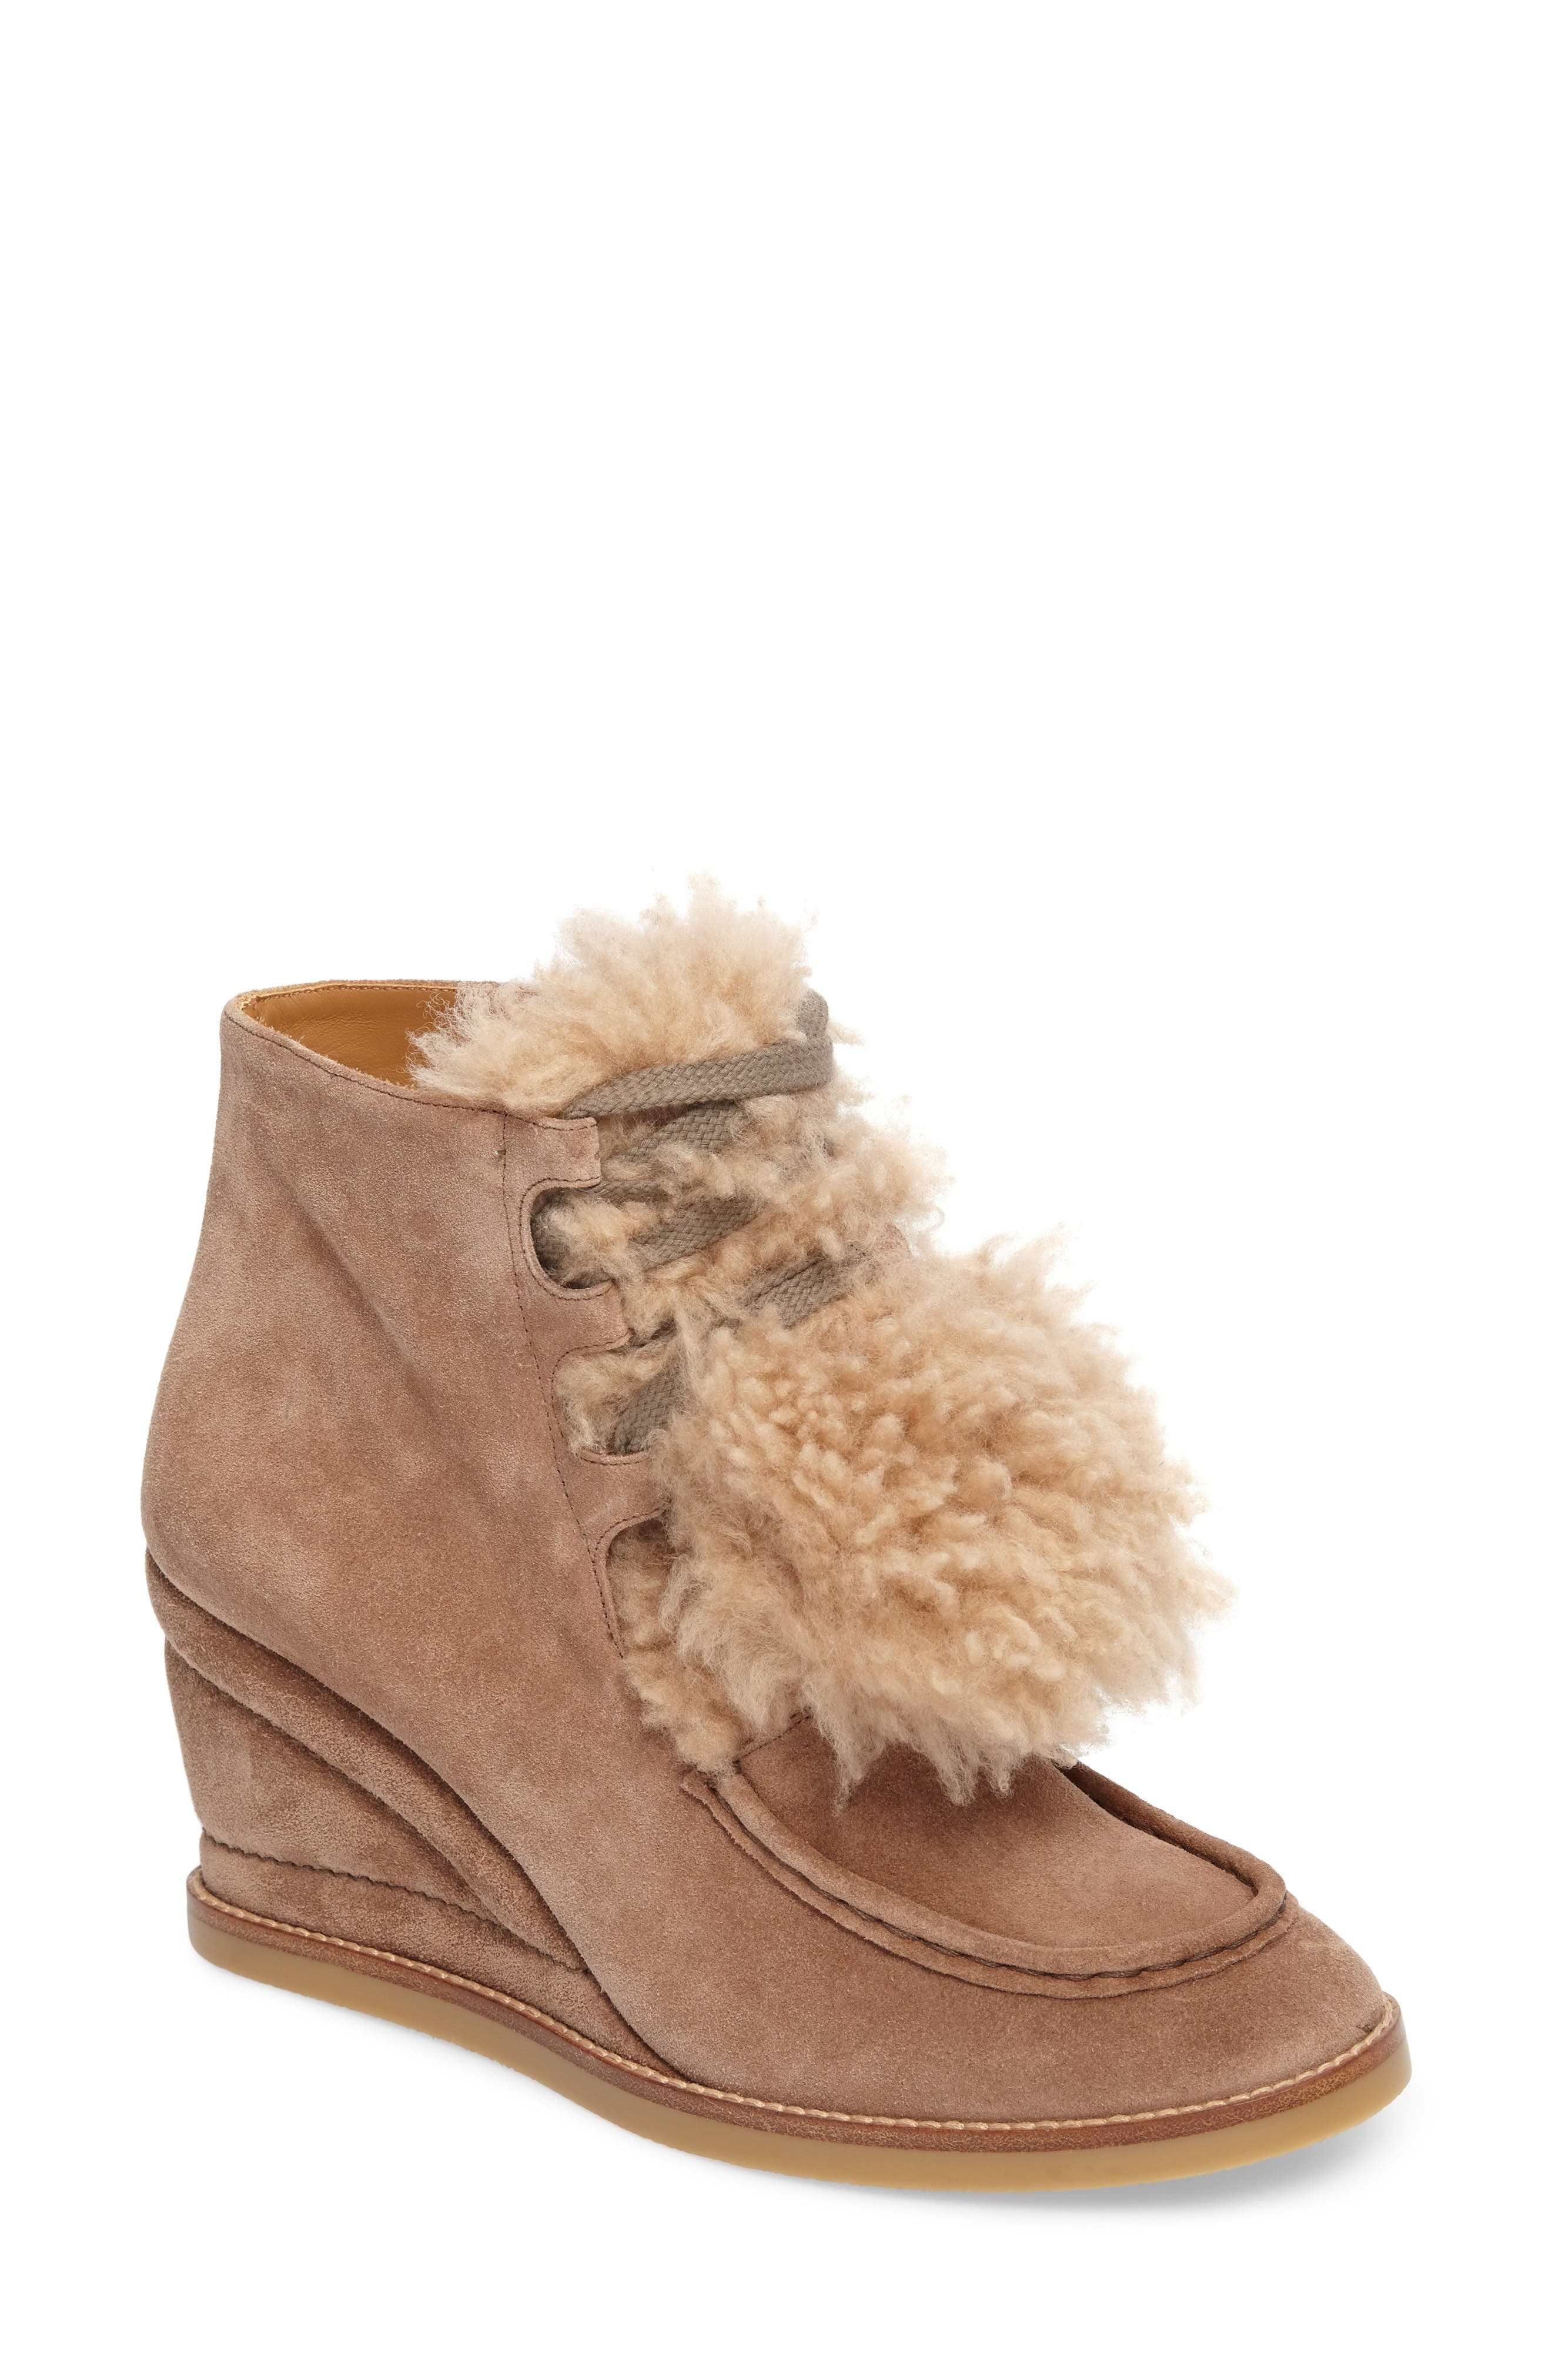 Peggy Genuine Shearling Wedge Bootie,                             Main thumbnail 1, color,                             Latte Brown Suede